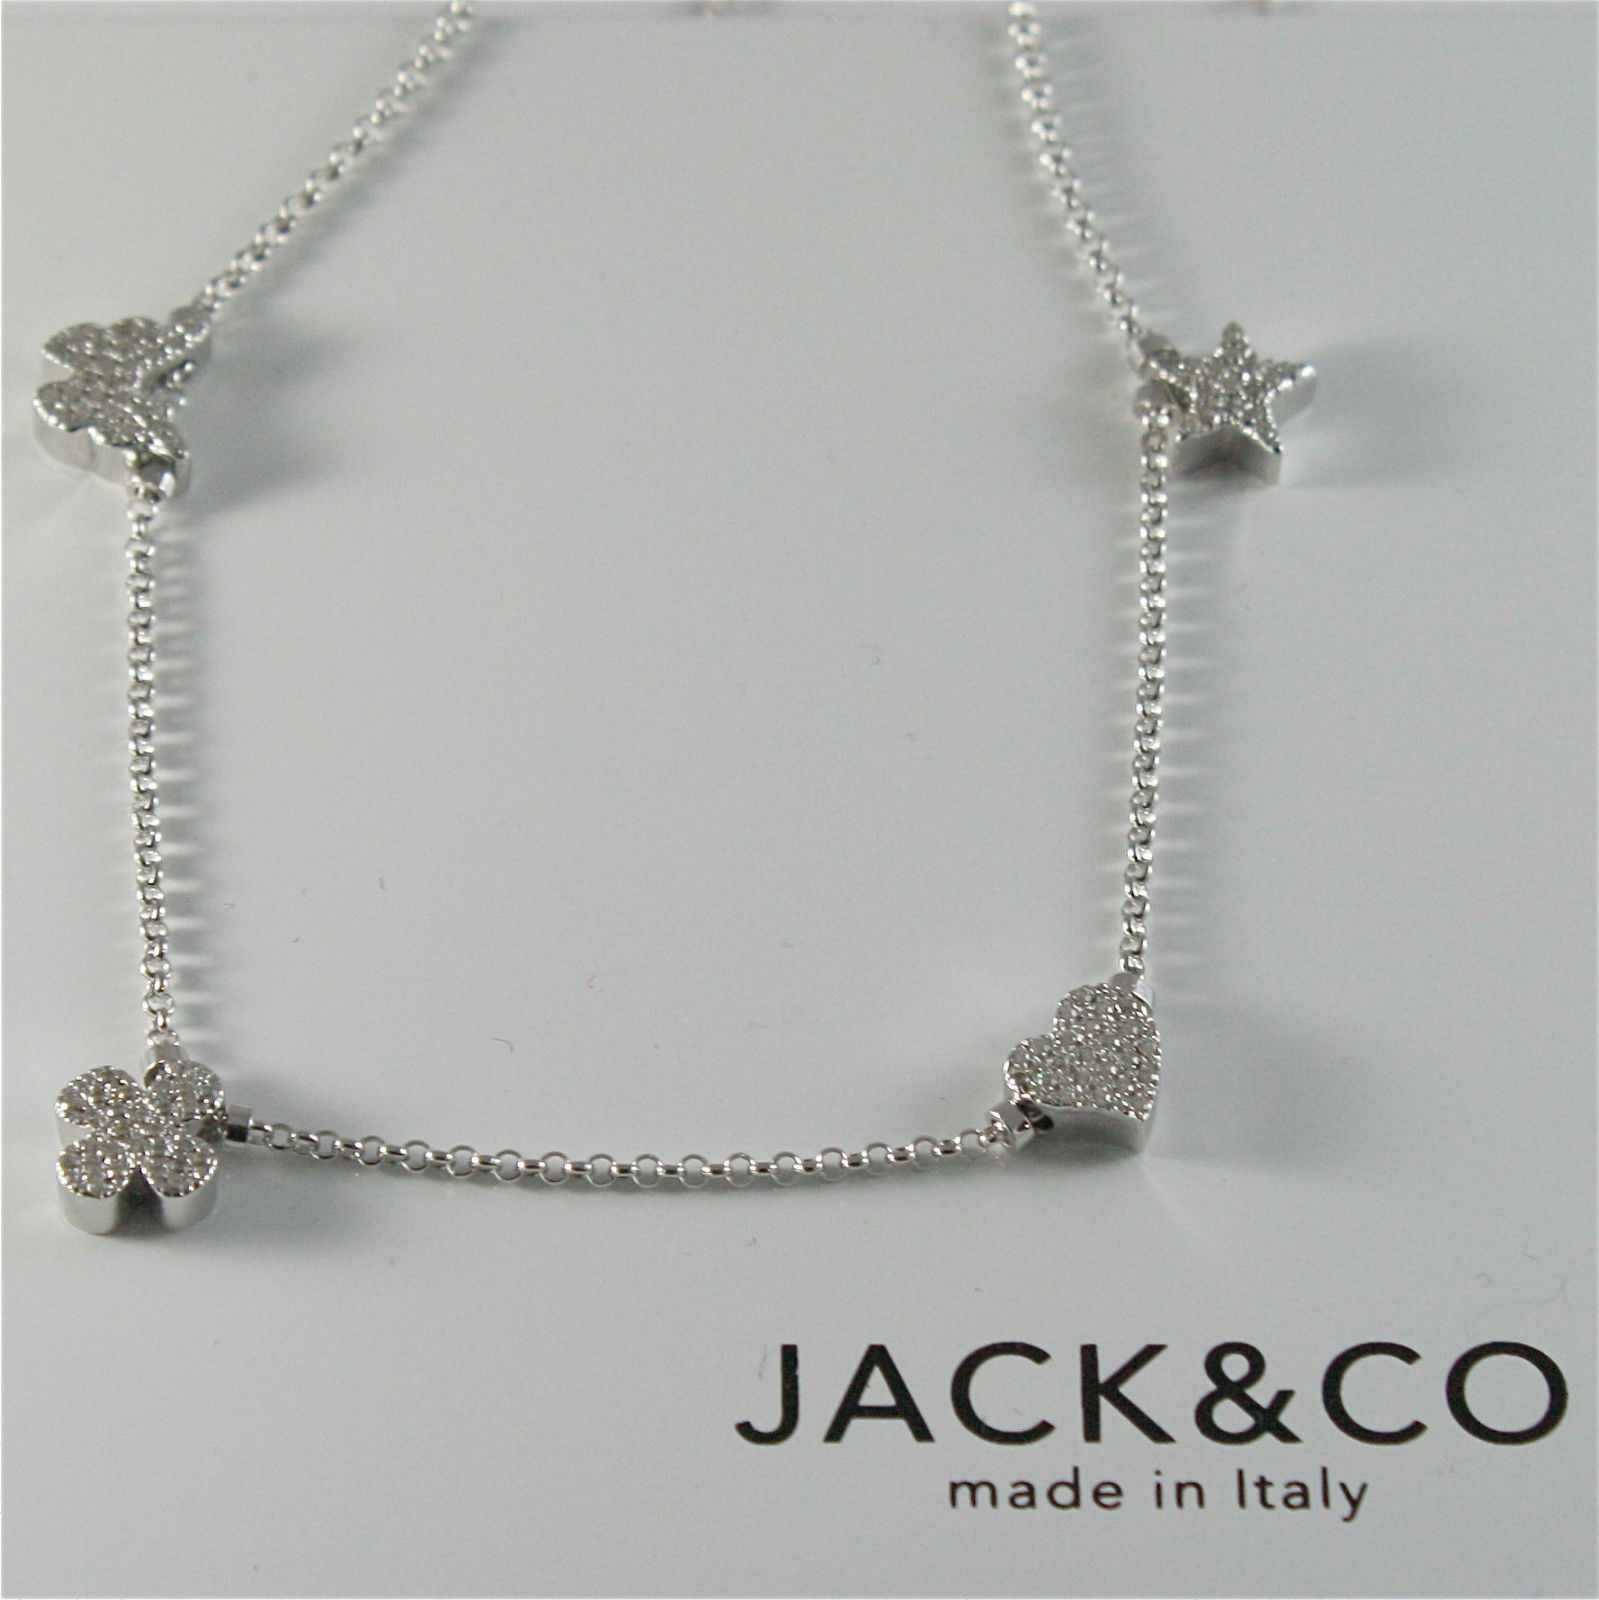 Silver Necklace 925 Jack&co with Four-Leaf Clover Heart Star and Butterfly 45 CM